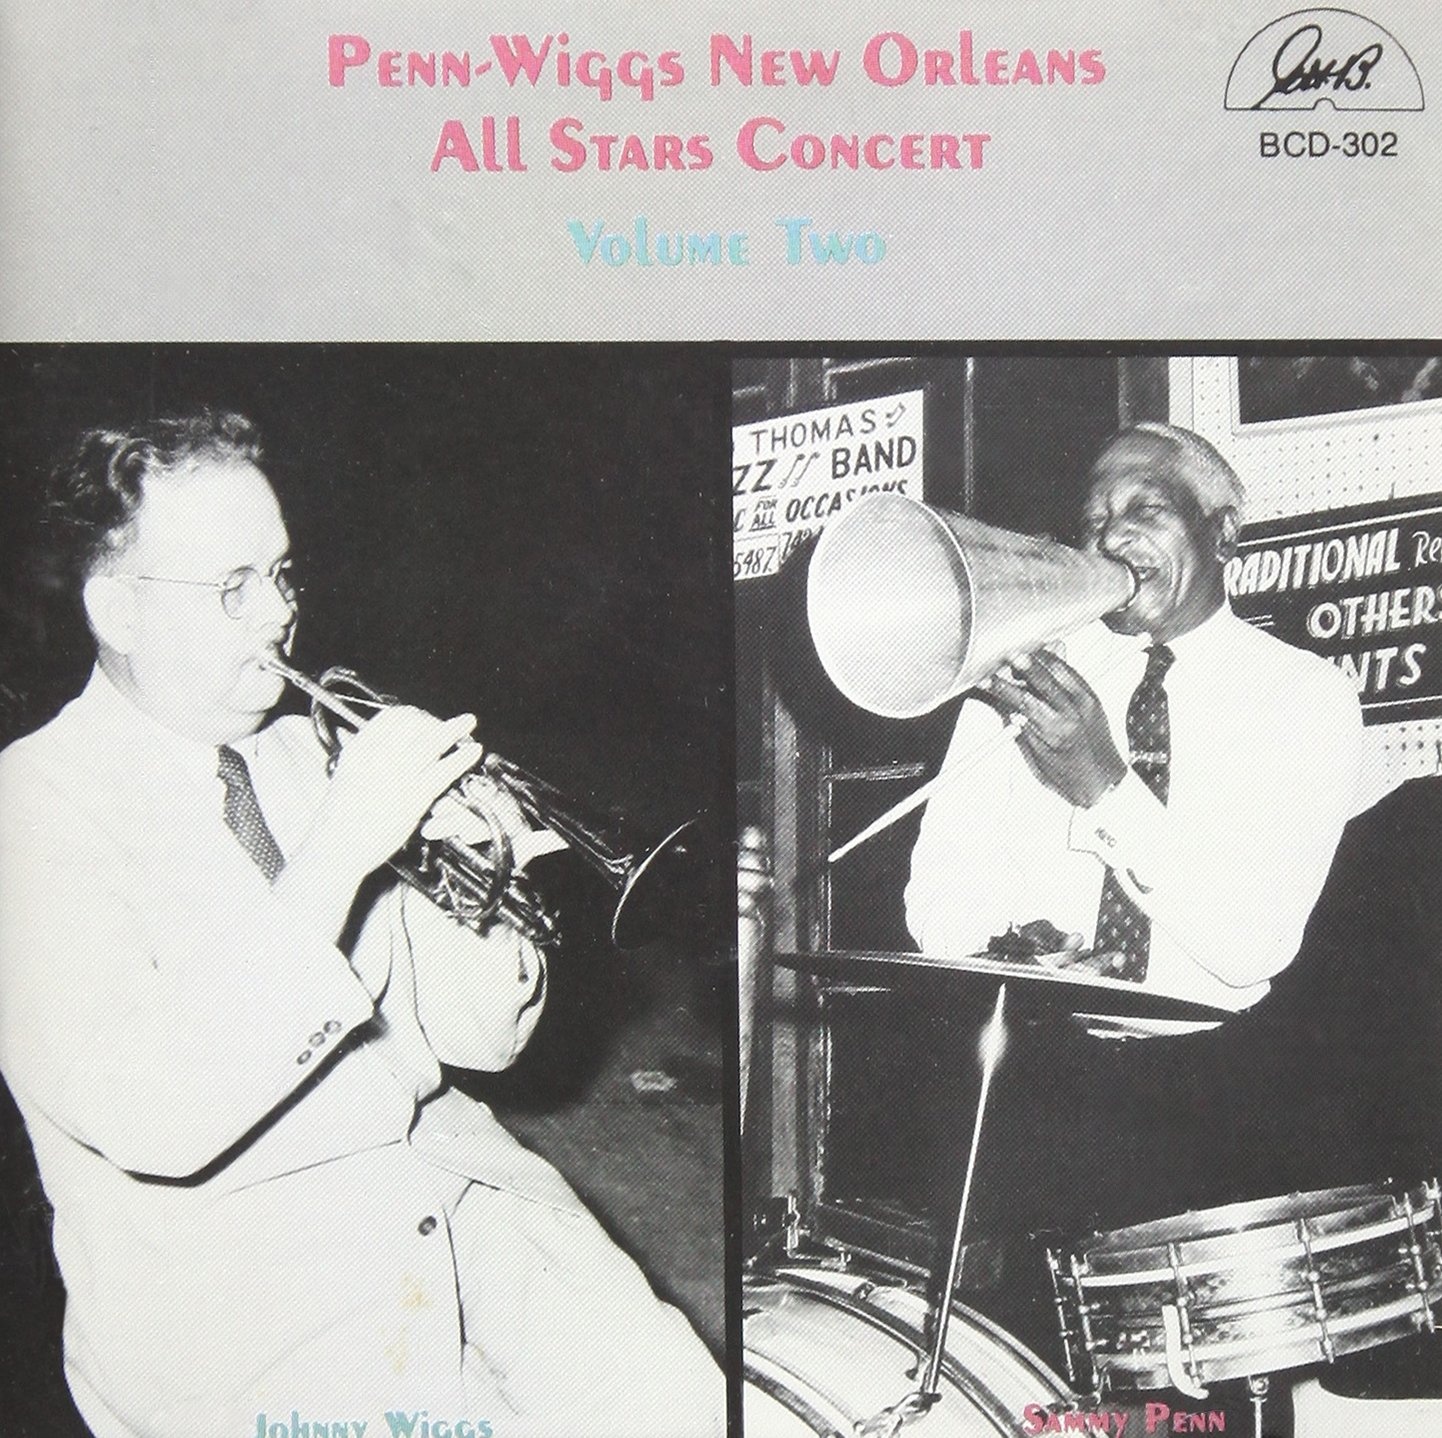 Penn-Wiggs New Orleans All Star Concert, Vol. 2